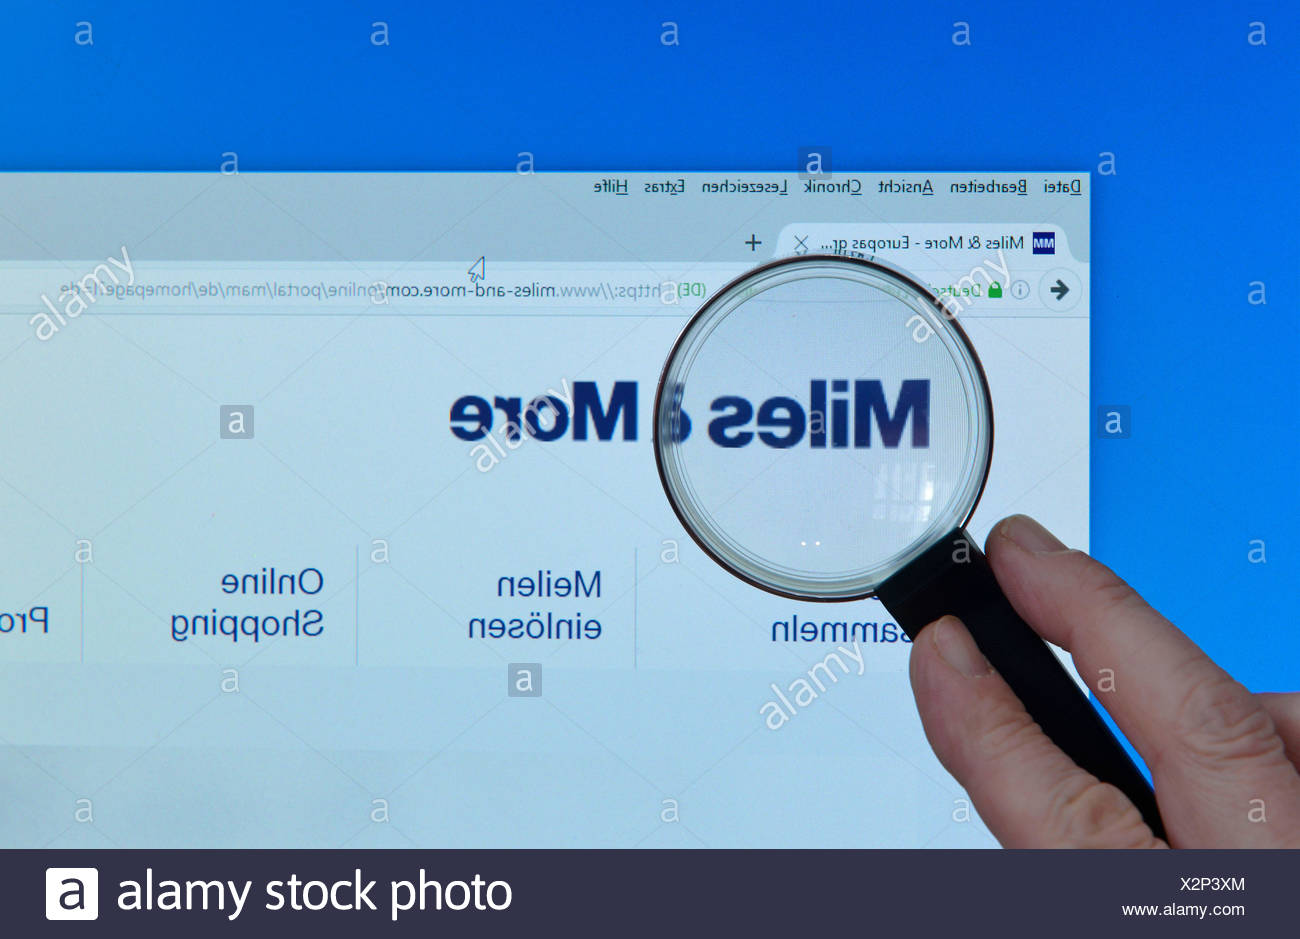 Miles-and-more.com, Internet, Monitor, Hand, Lupe - Stock Image